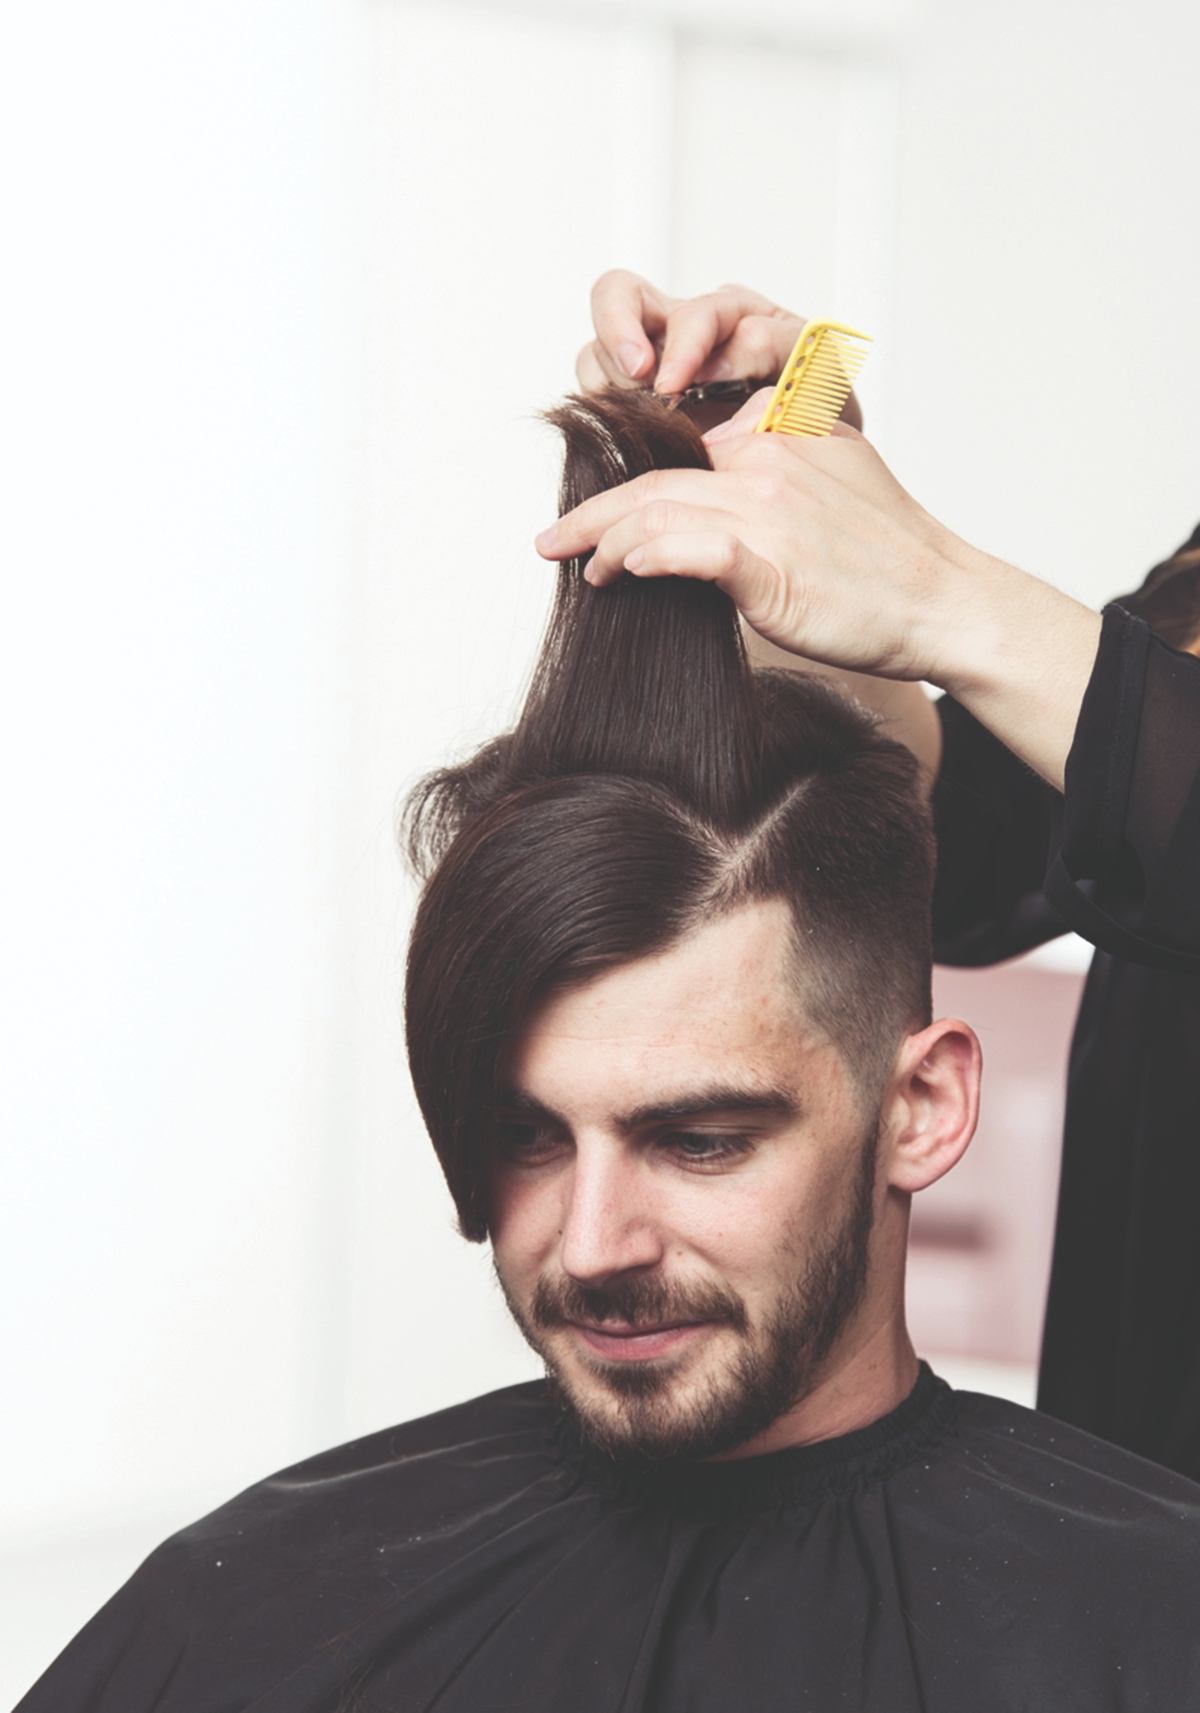 stella_trend_2019_barber_step12